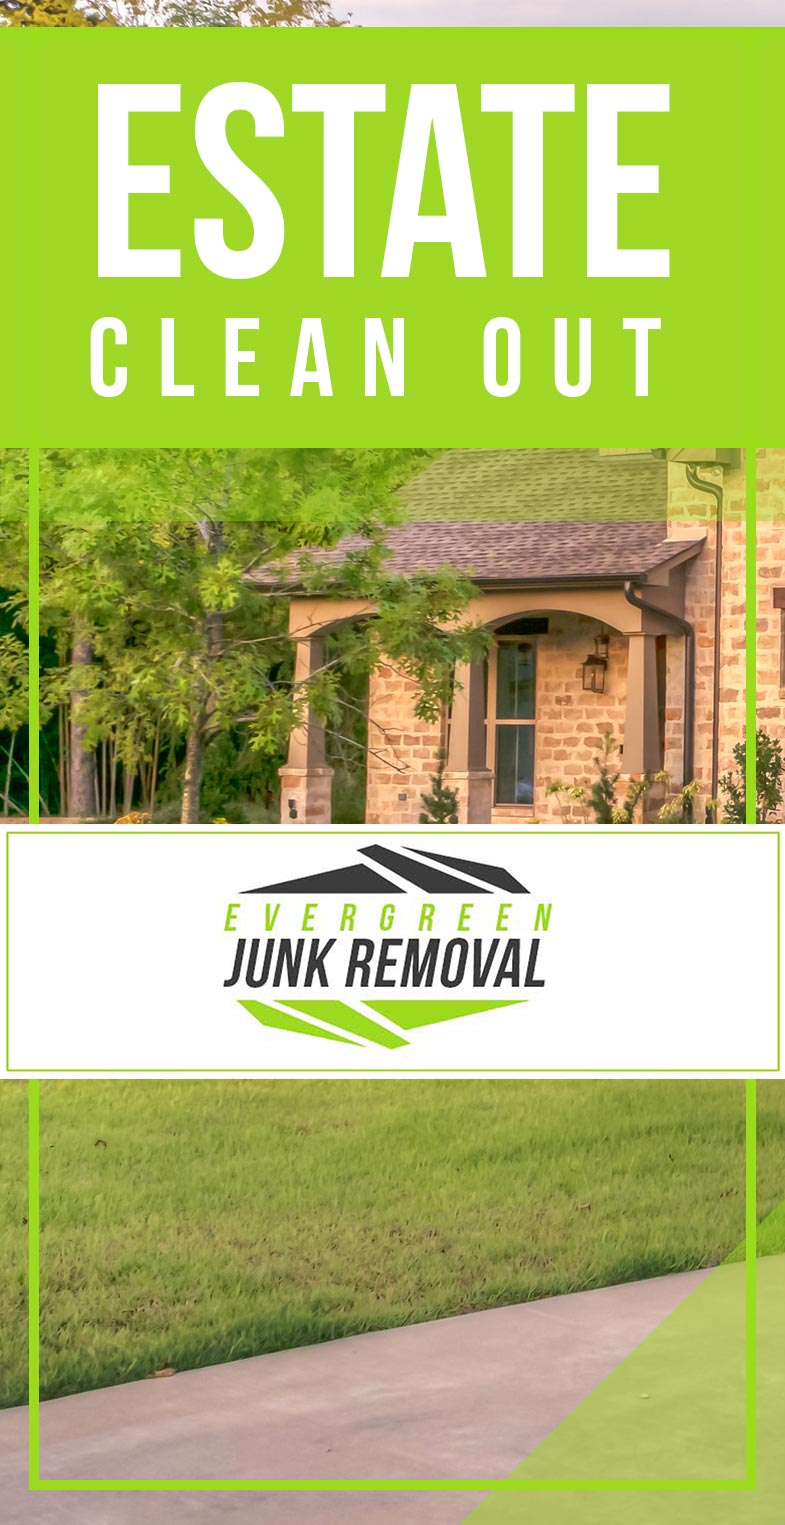 Overland Property Clean Out